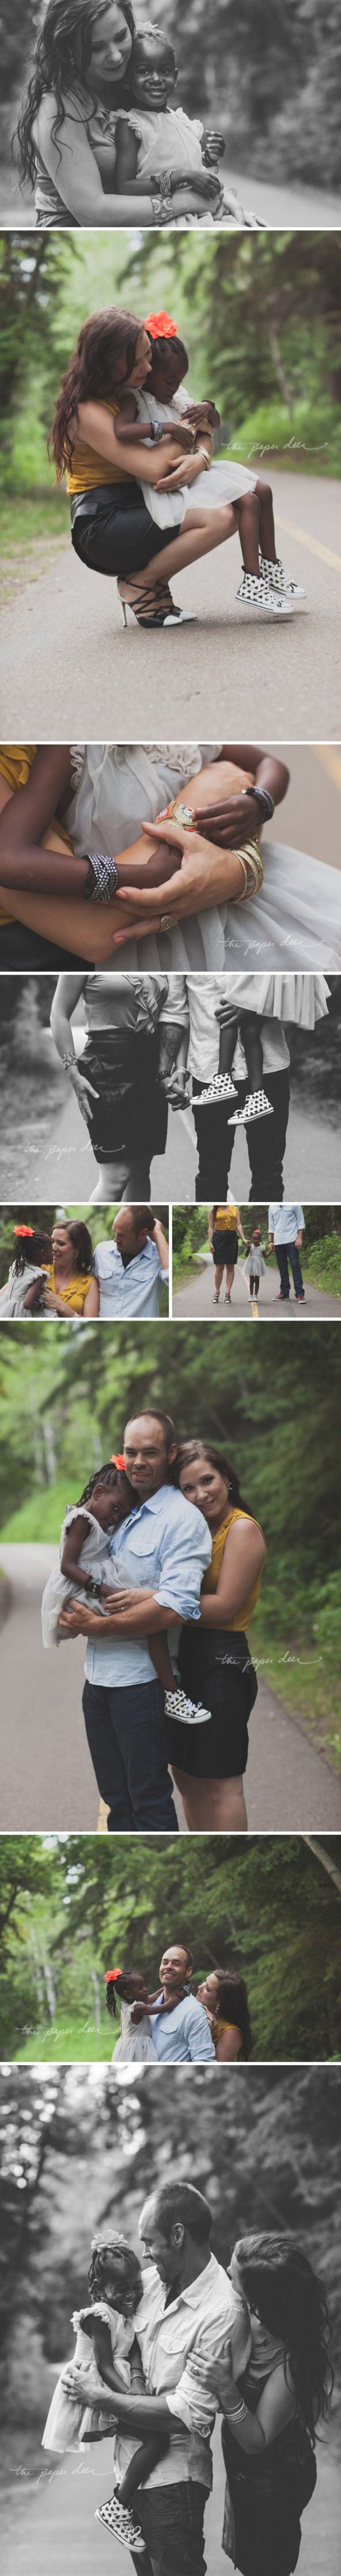 adoption photography | ©The Paper Deer Photography | thepaperdeer.ca